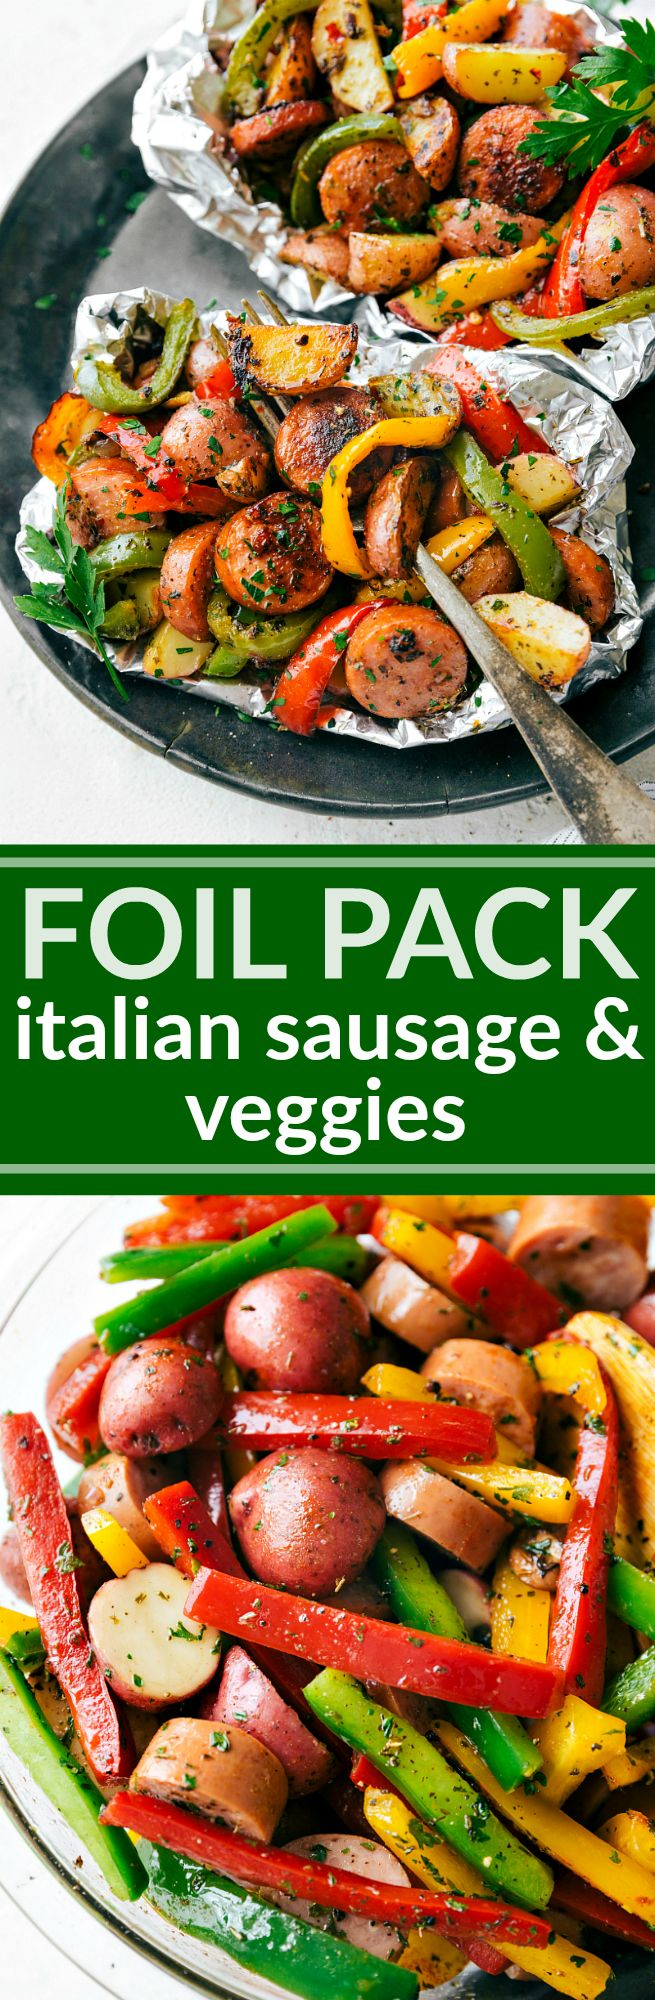 EASY TIN FOIL ITALIAN SAUSAGE AND VEGGIES!!! A great outdoor grill or camping recipe. PLUS instructions to cook this in the stove and without foil! via chelseasmessyapron.com